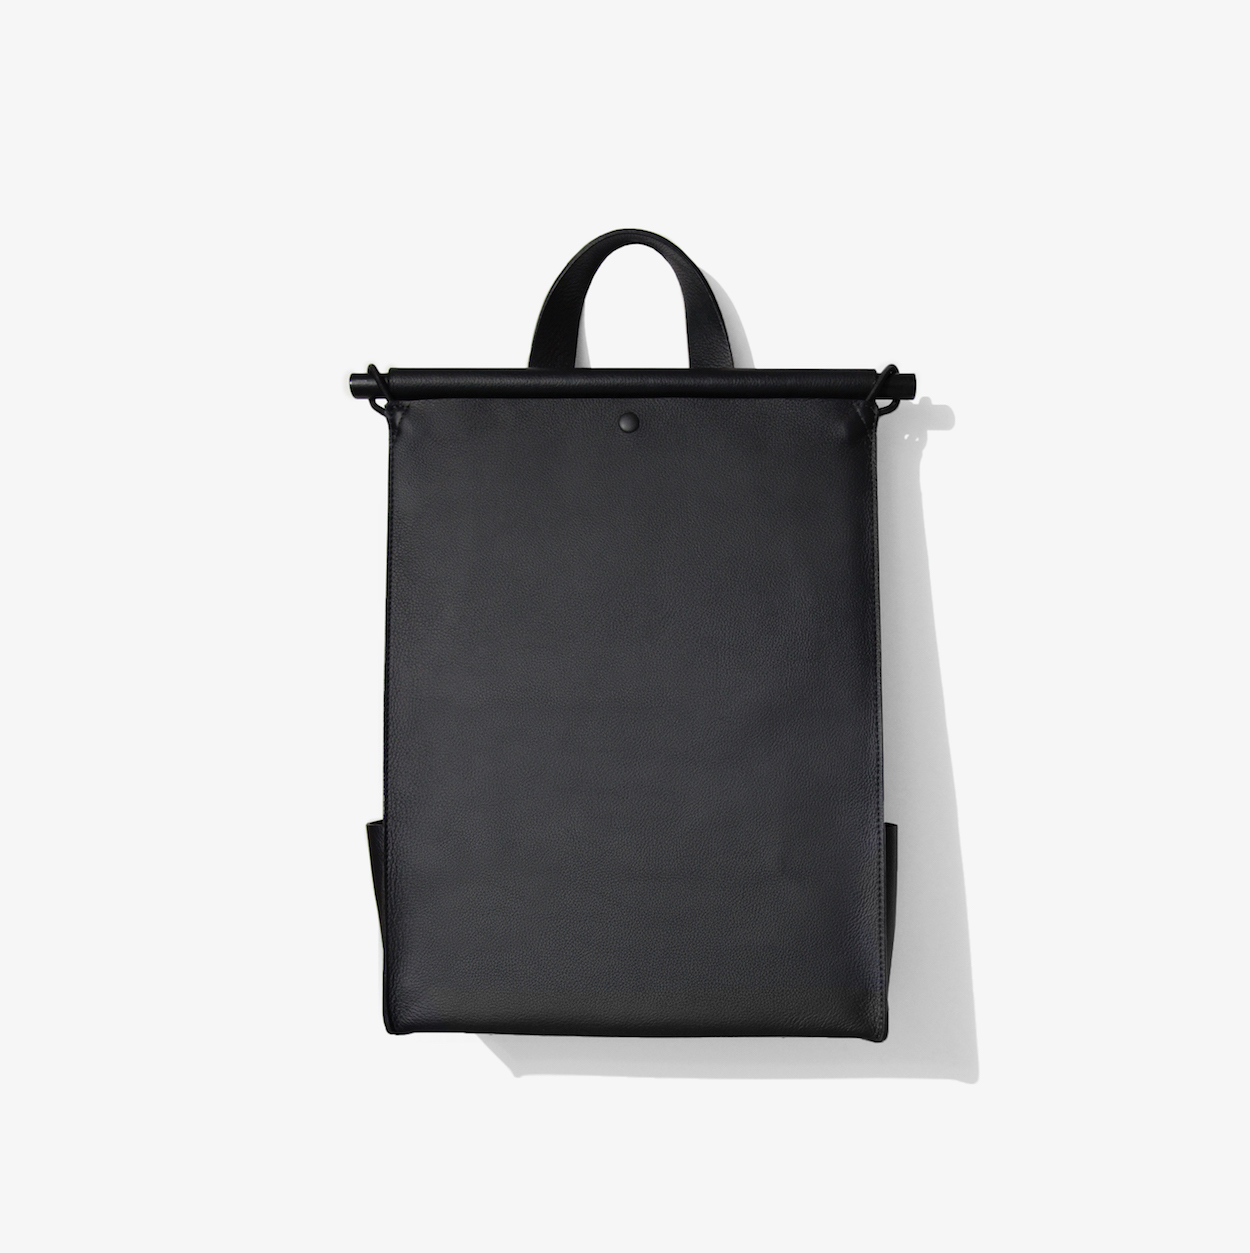 Sac à Dos: A Minimalist Backpack by The Atelier YUL: